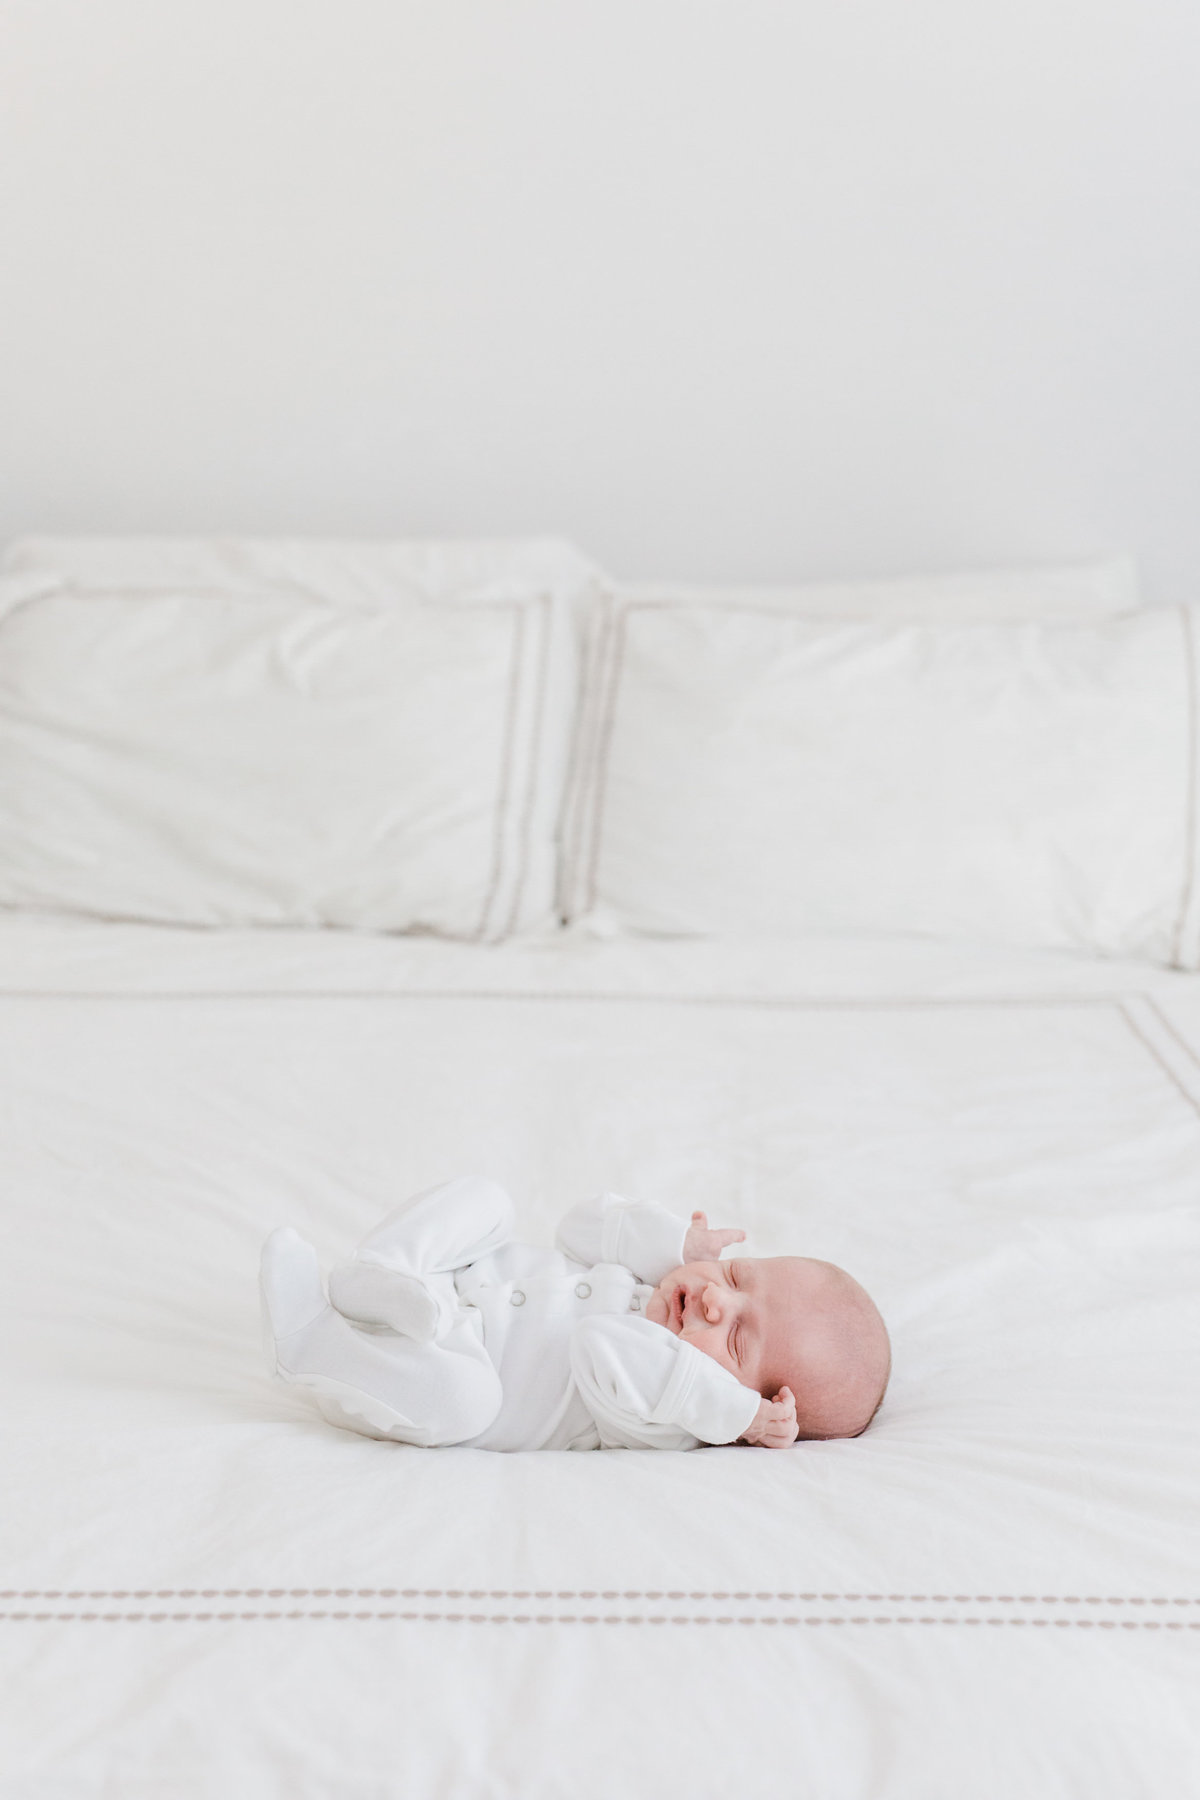 Charleston-Newborn-Photographer-29